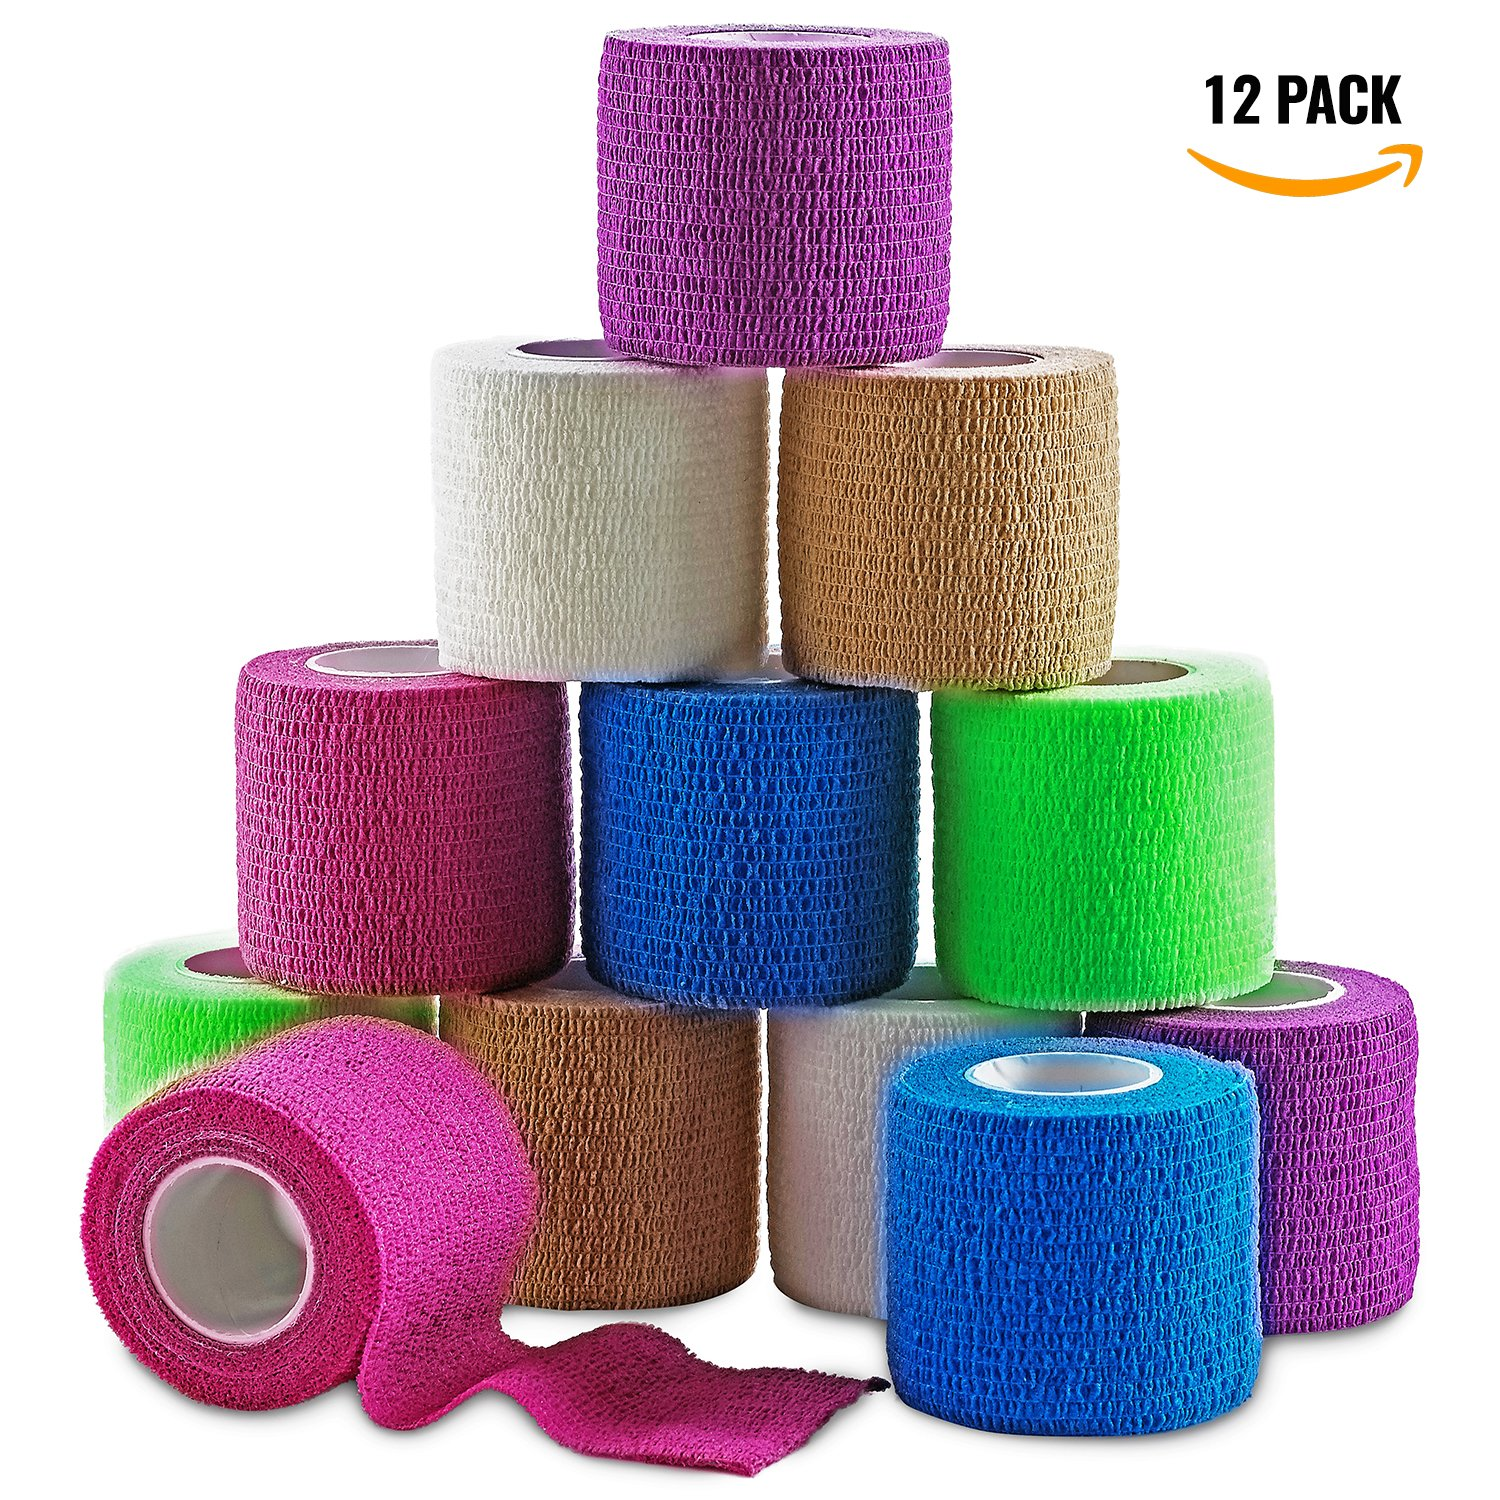 MEDca Self Adherent Cohesive Wrap Bandages 2 Inches X 5 Yards 12 Count with Strong Elastic and Colorful First Aid Tape for Sprain Swelling and Sorenes (Rainbow Color)